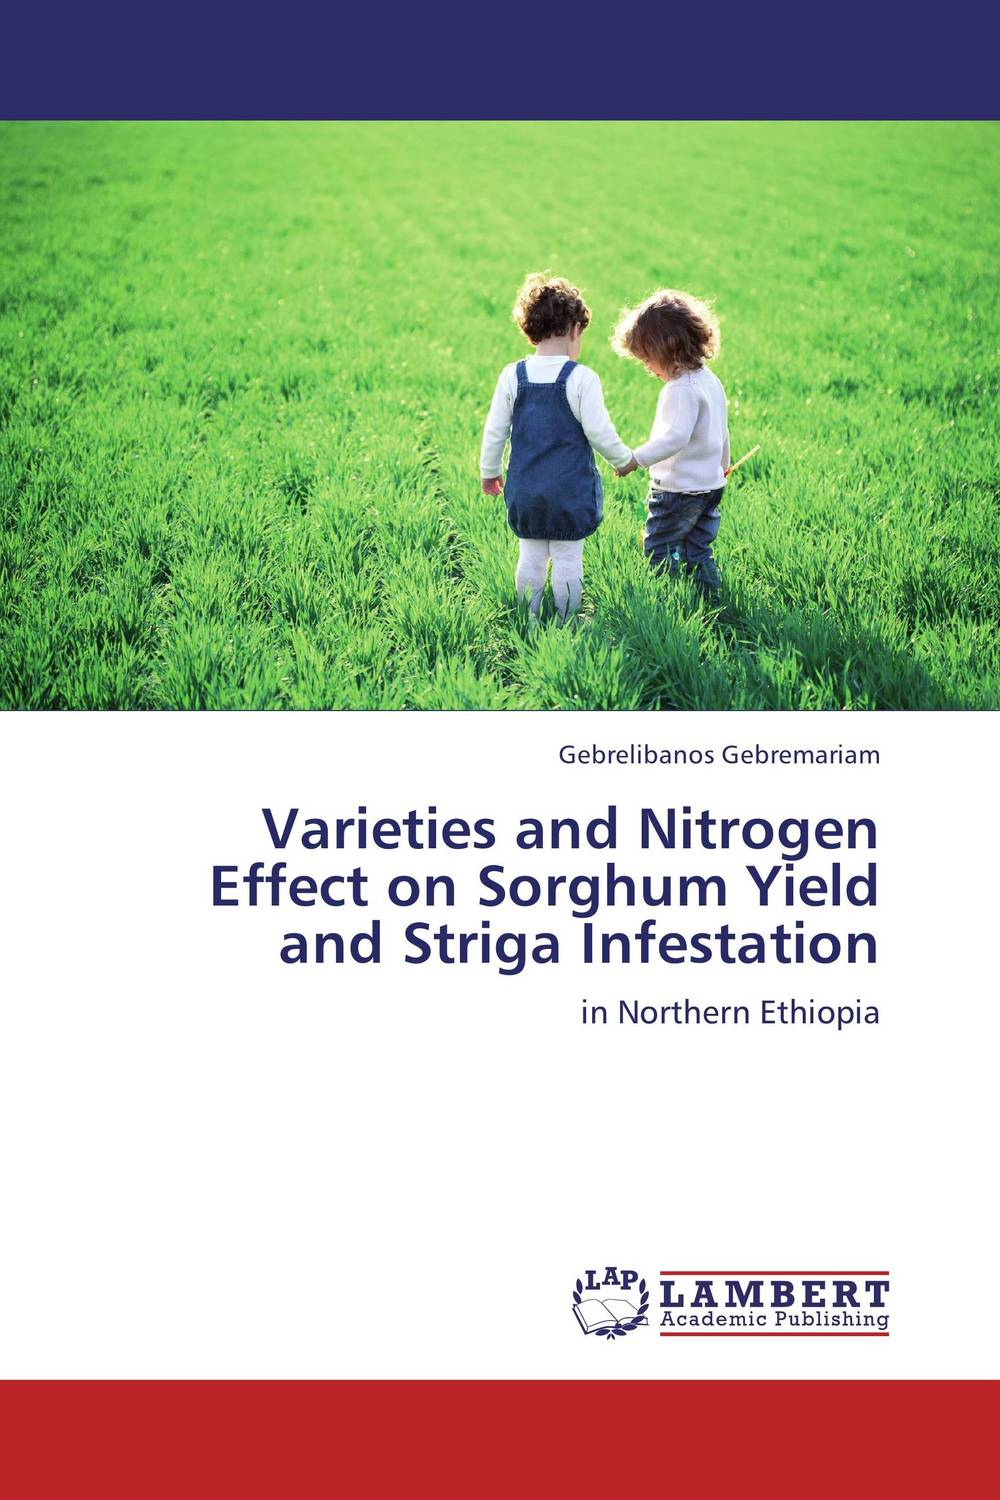 Varieties and Nitrogen Effect on Sorghum Yield and Striga Infestation cleto namoobe and rajender kumar nanwal growth yield and quality of sorghum as influenced by nitrogen levels